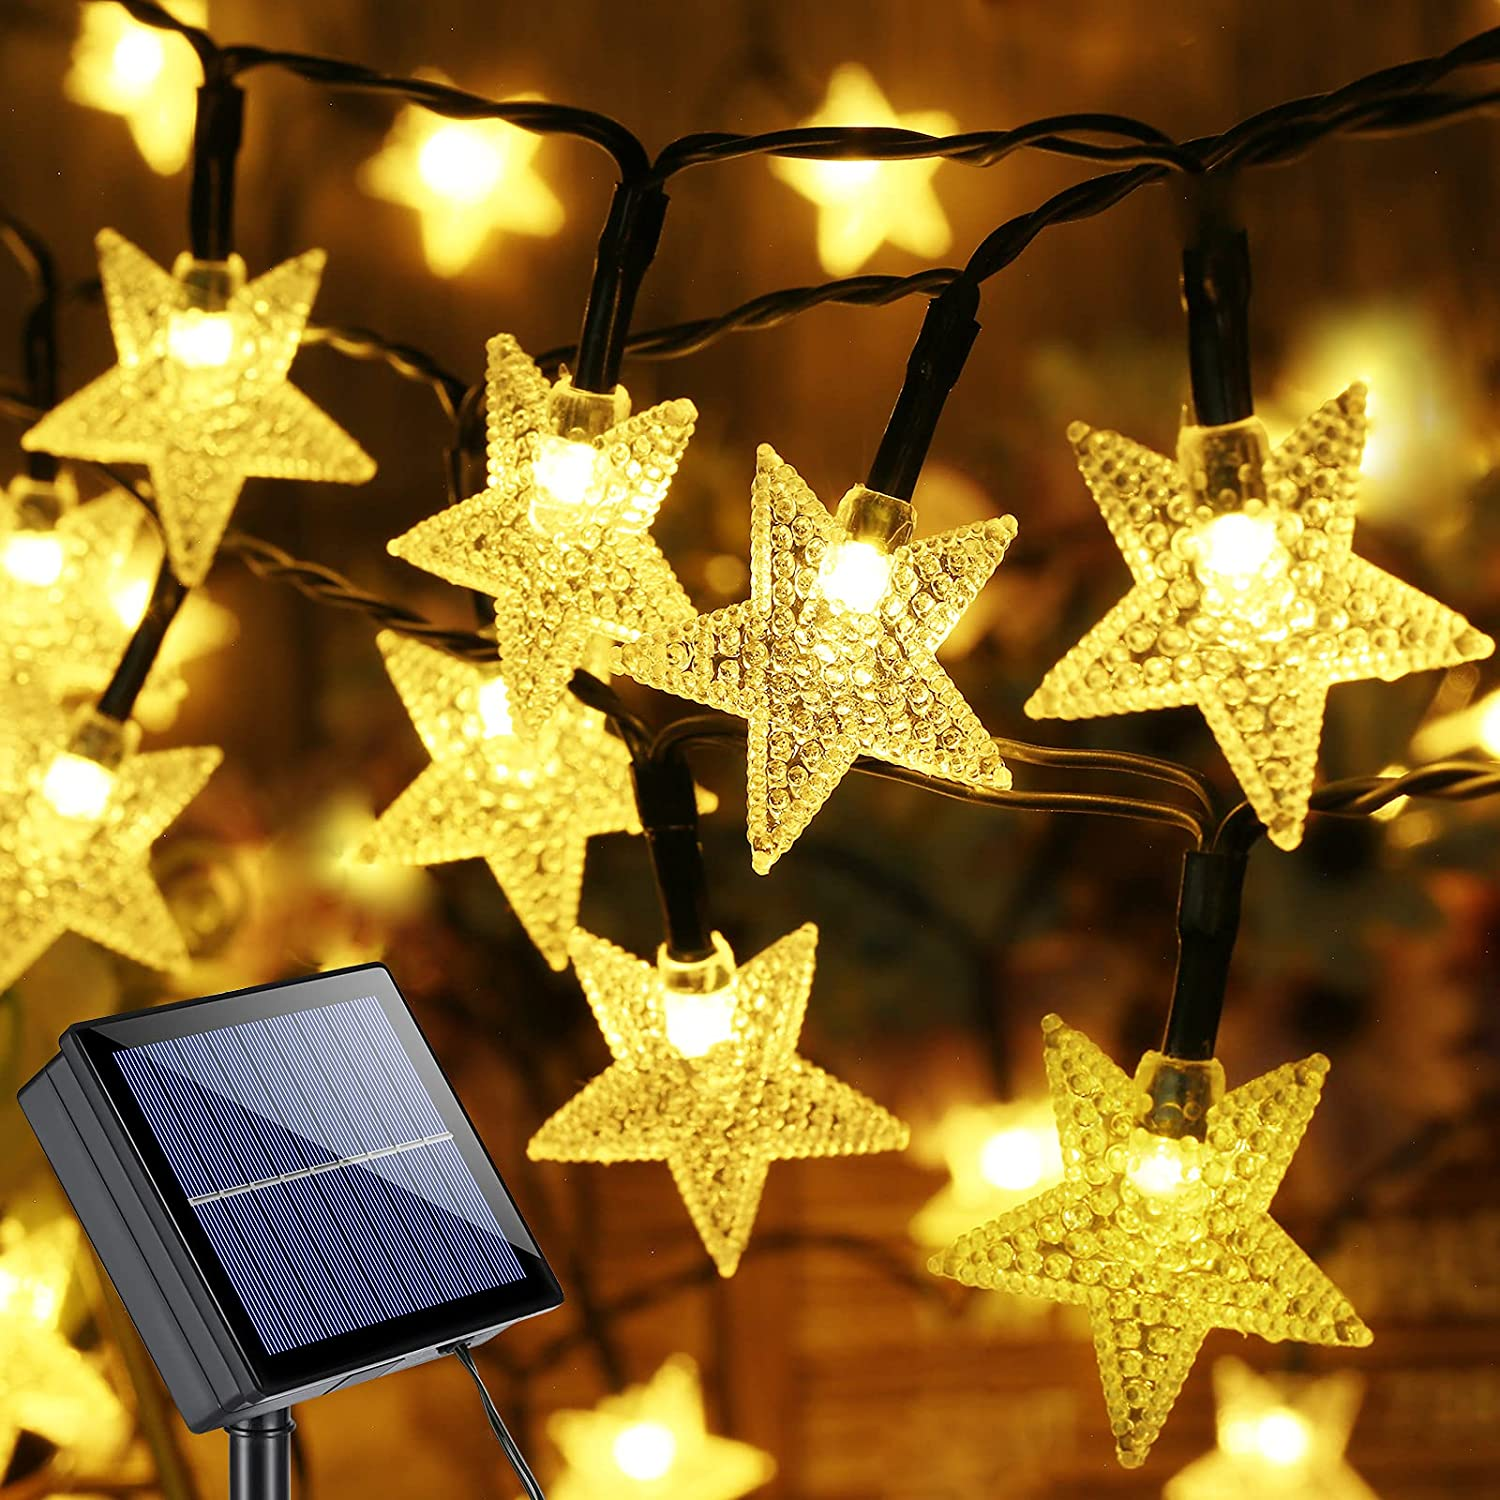 Brizled Star Solar String Lights, 39ft 100 LED Solar Lights Outdoor, 8 Modes Star Twinkle Light Waterproof Solar Light String with Memory for Balcony Party Patio Garden Yard & Home Decor, Warm White